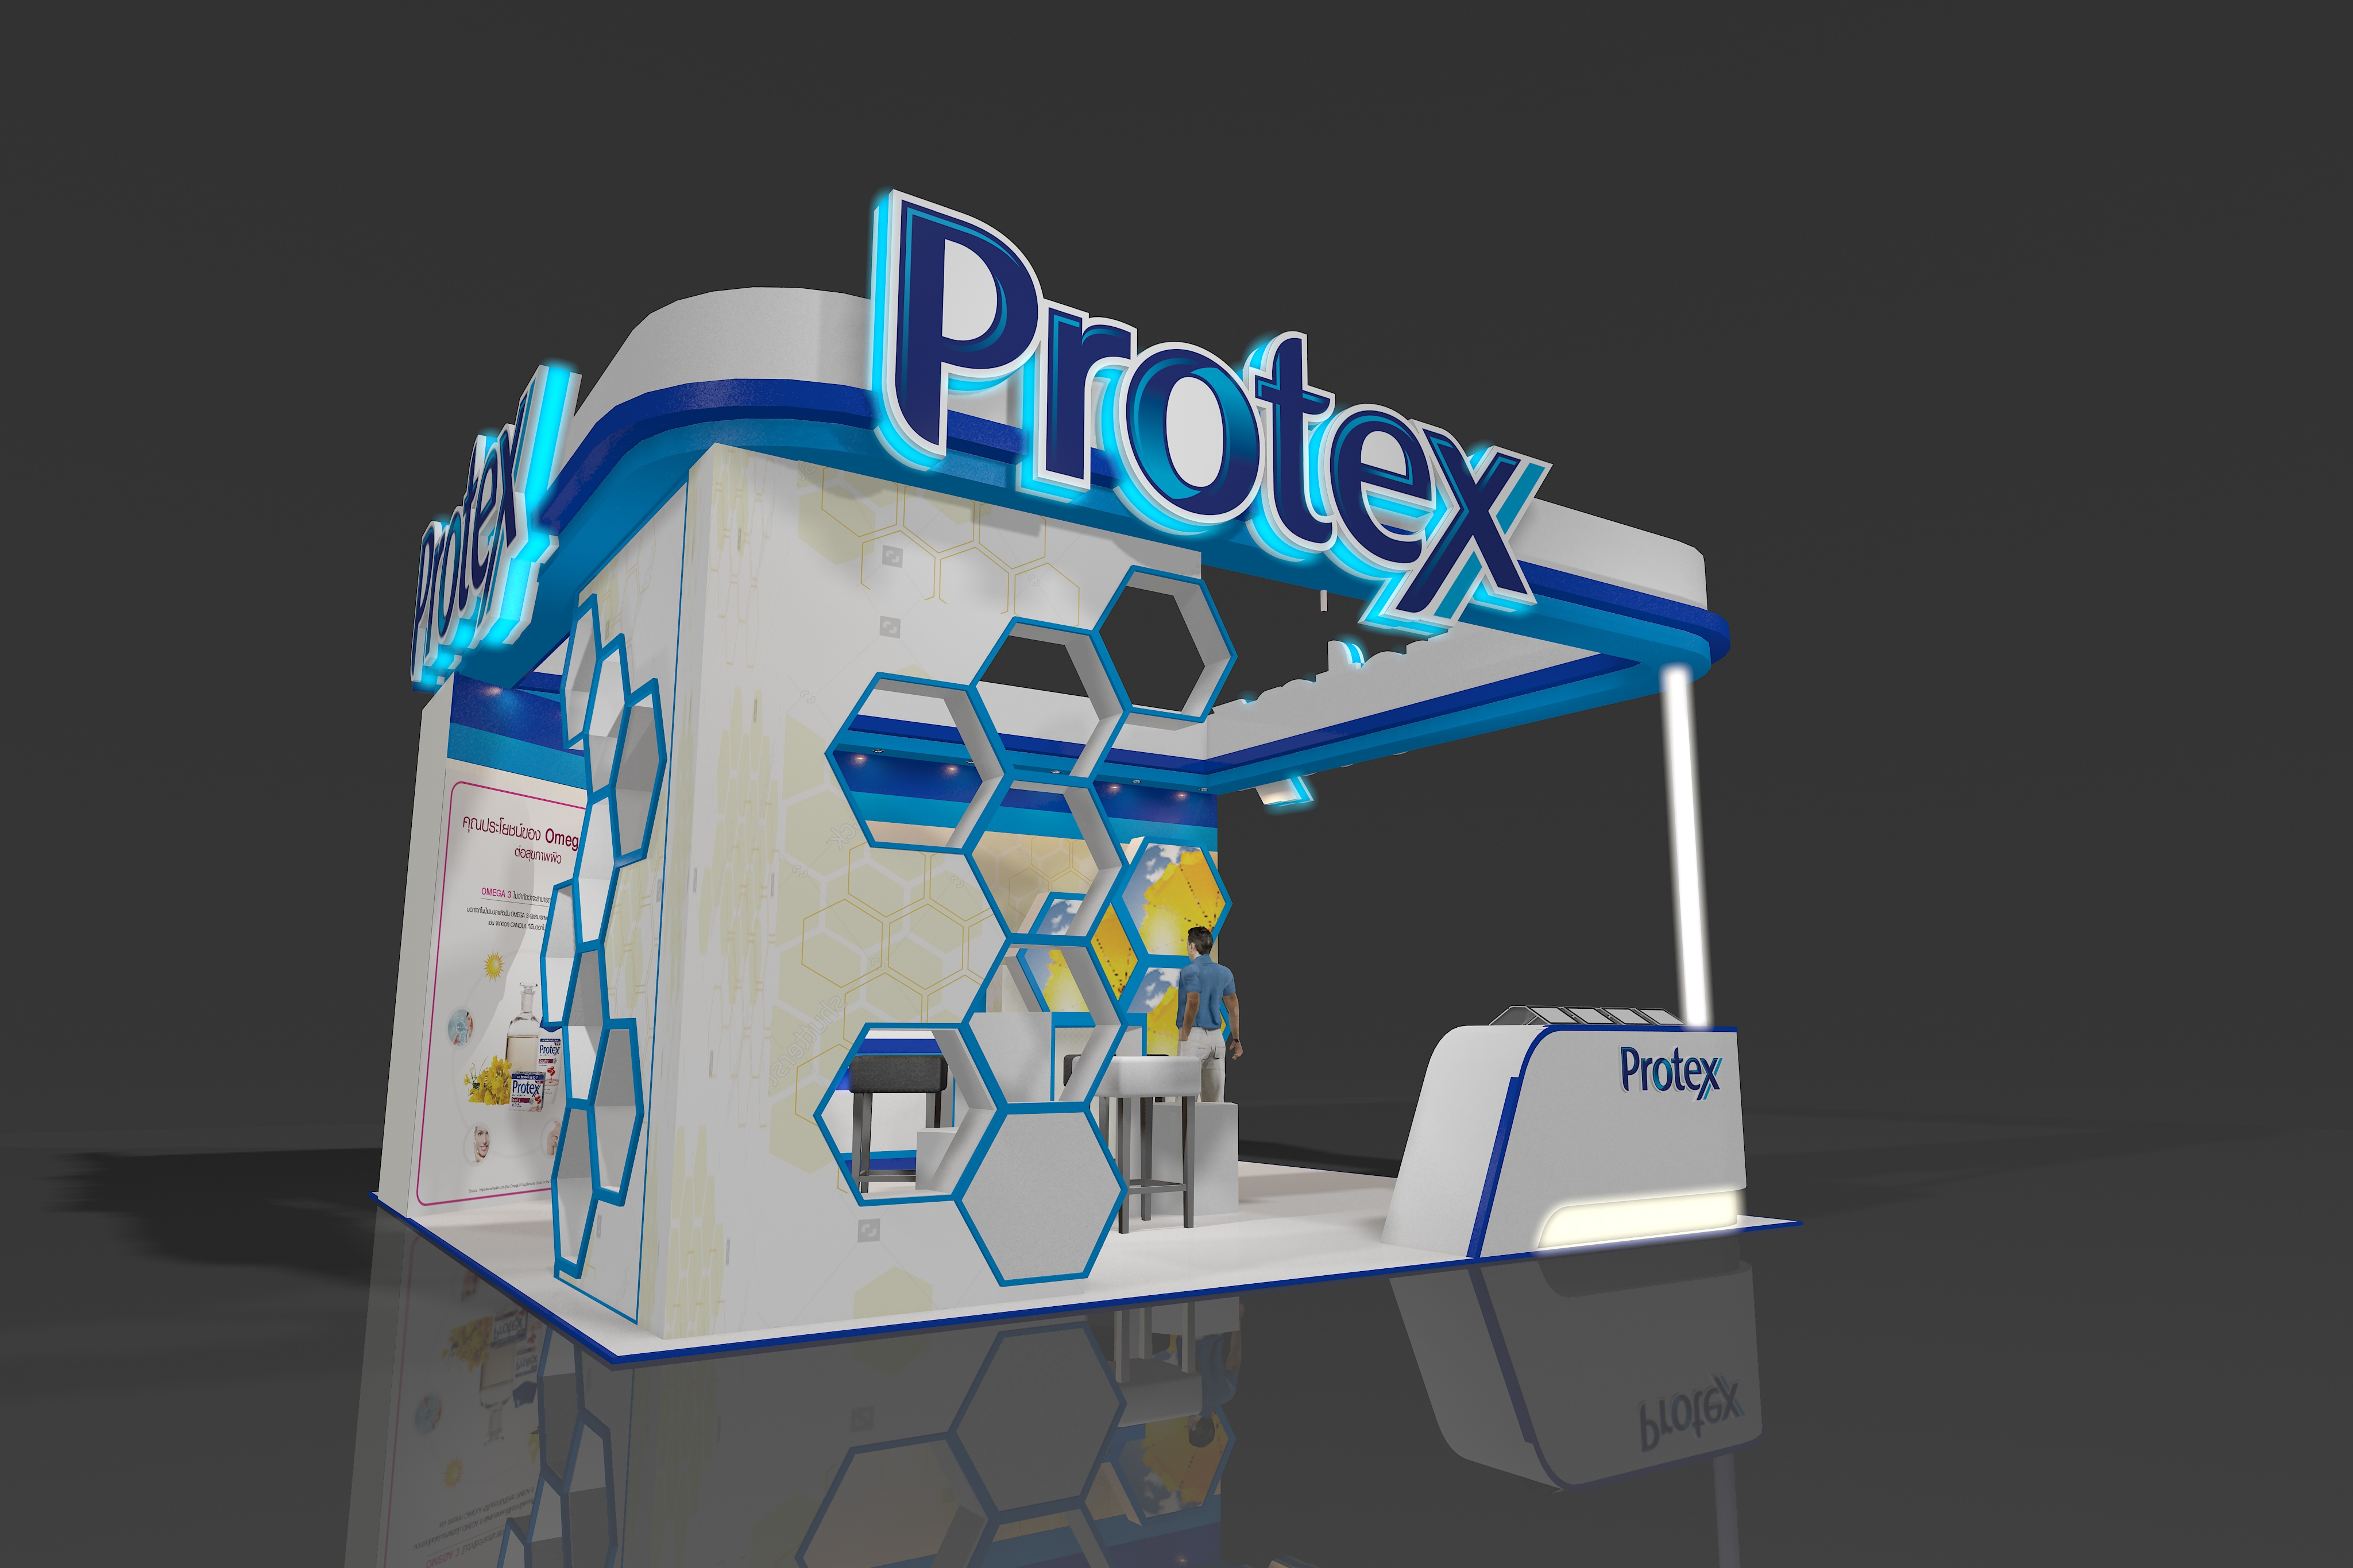 Education Exhibition Booth Design : Protex booth design chawawa one stop marketing service